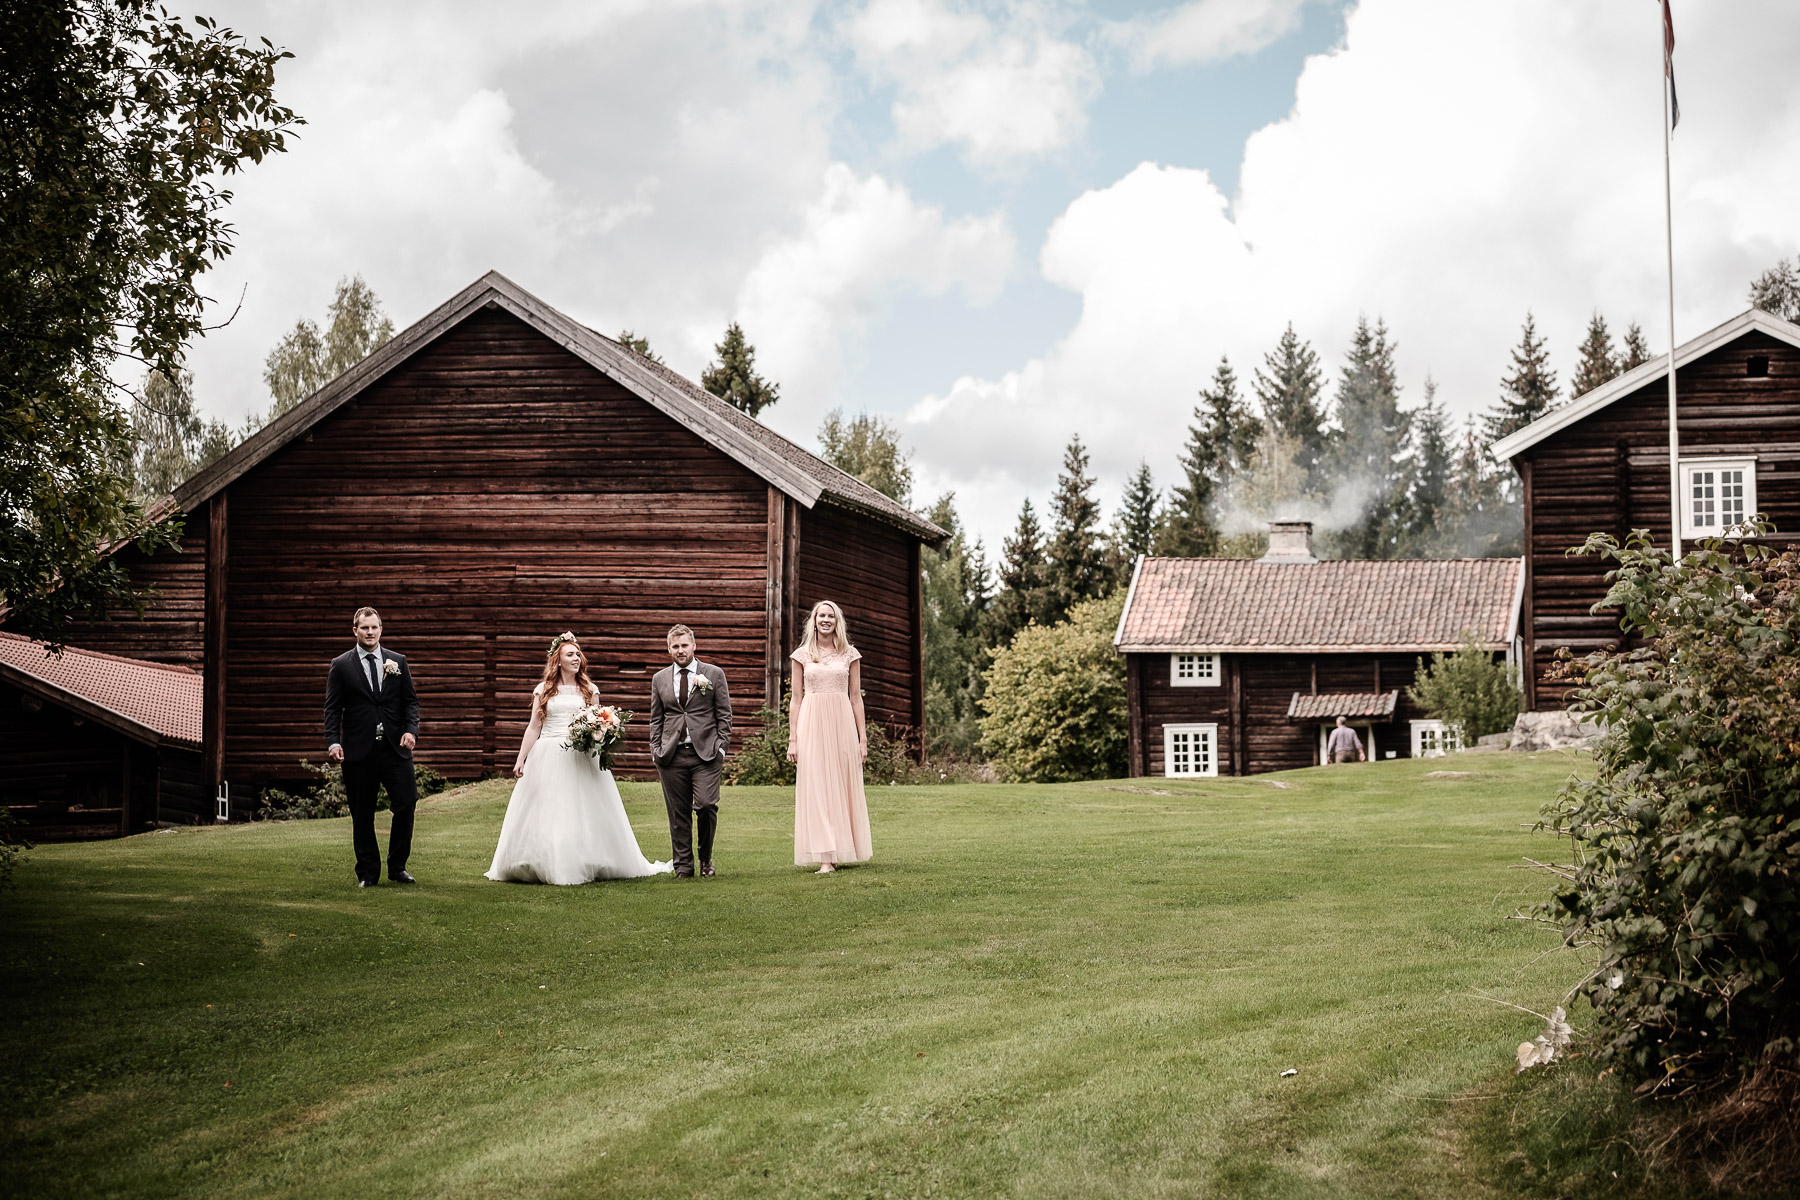 Click to enlarge image elise-christoffer-eidsvoll-ottossonphoto-1031.jpg